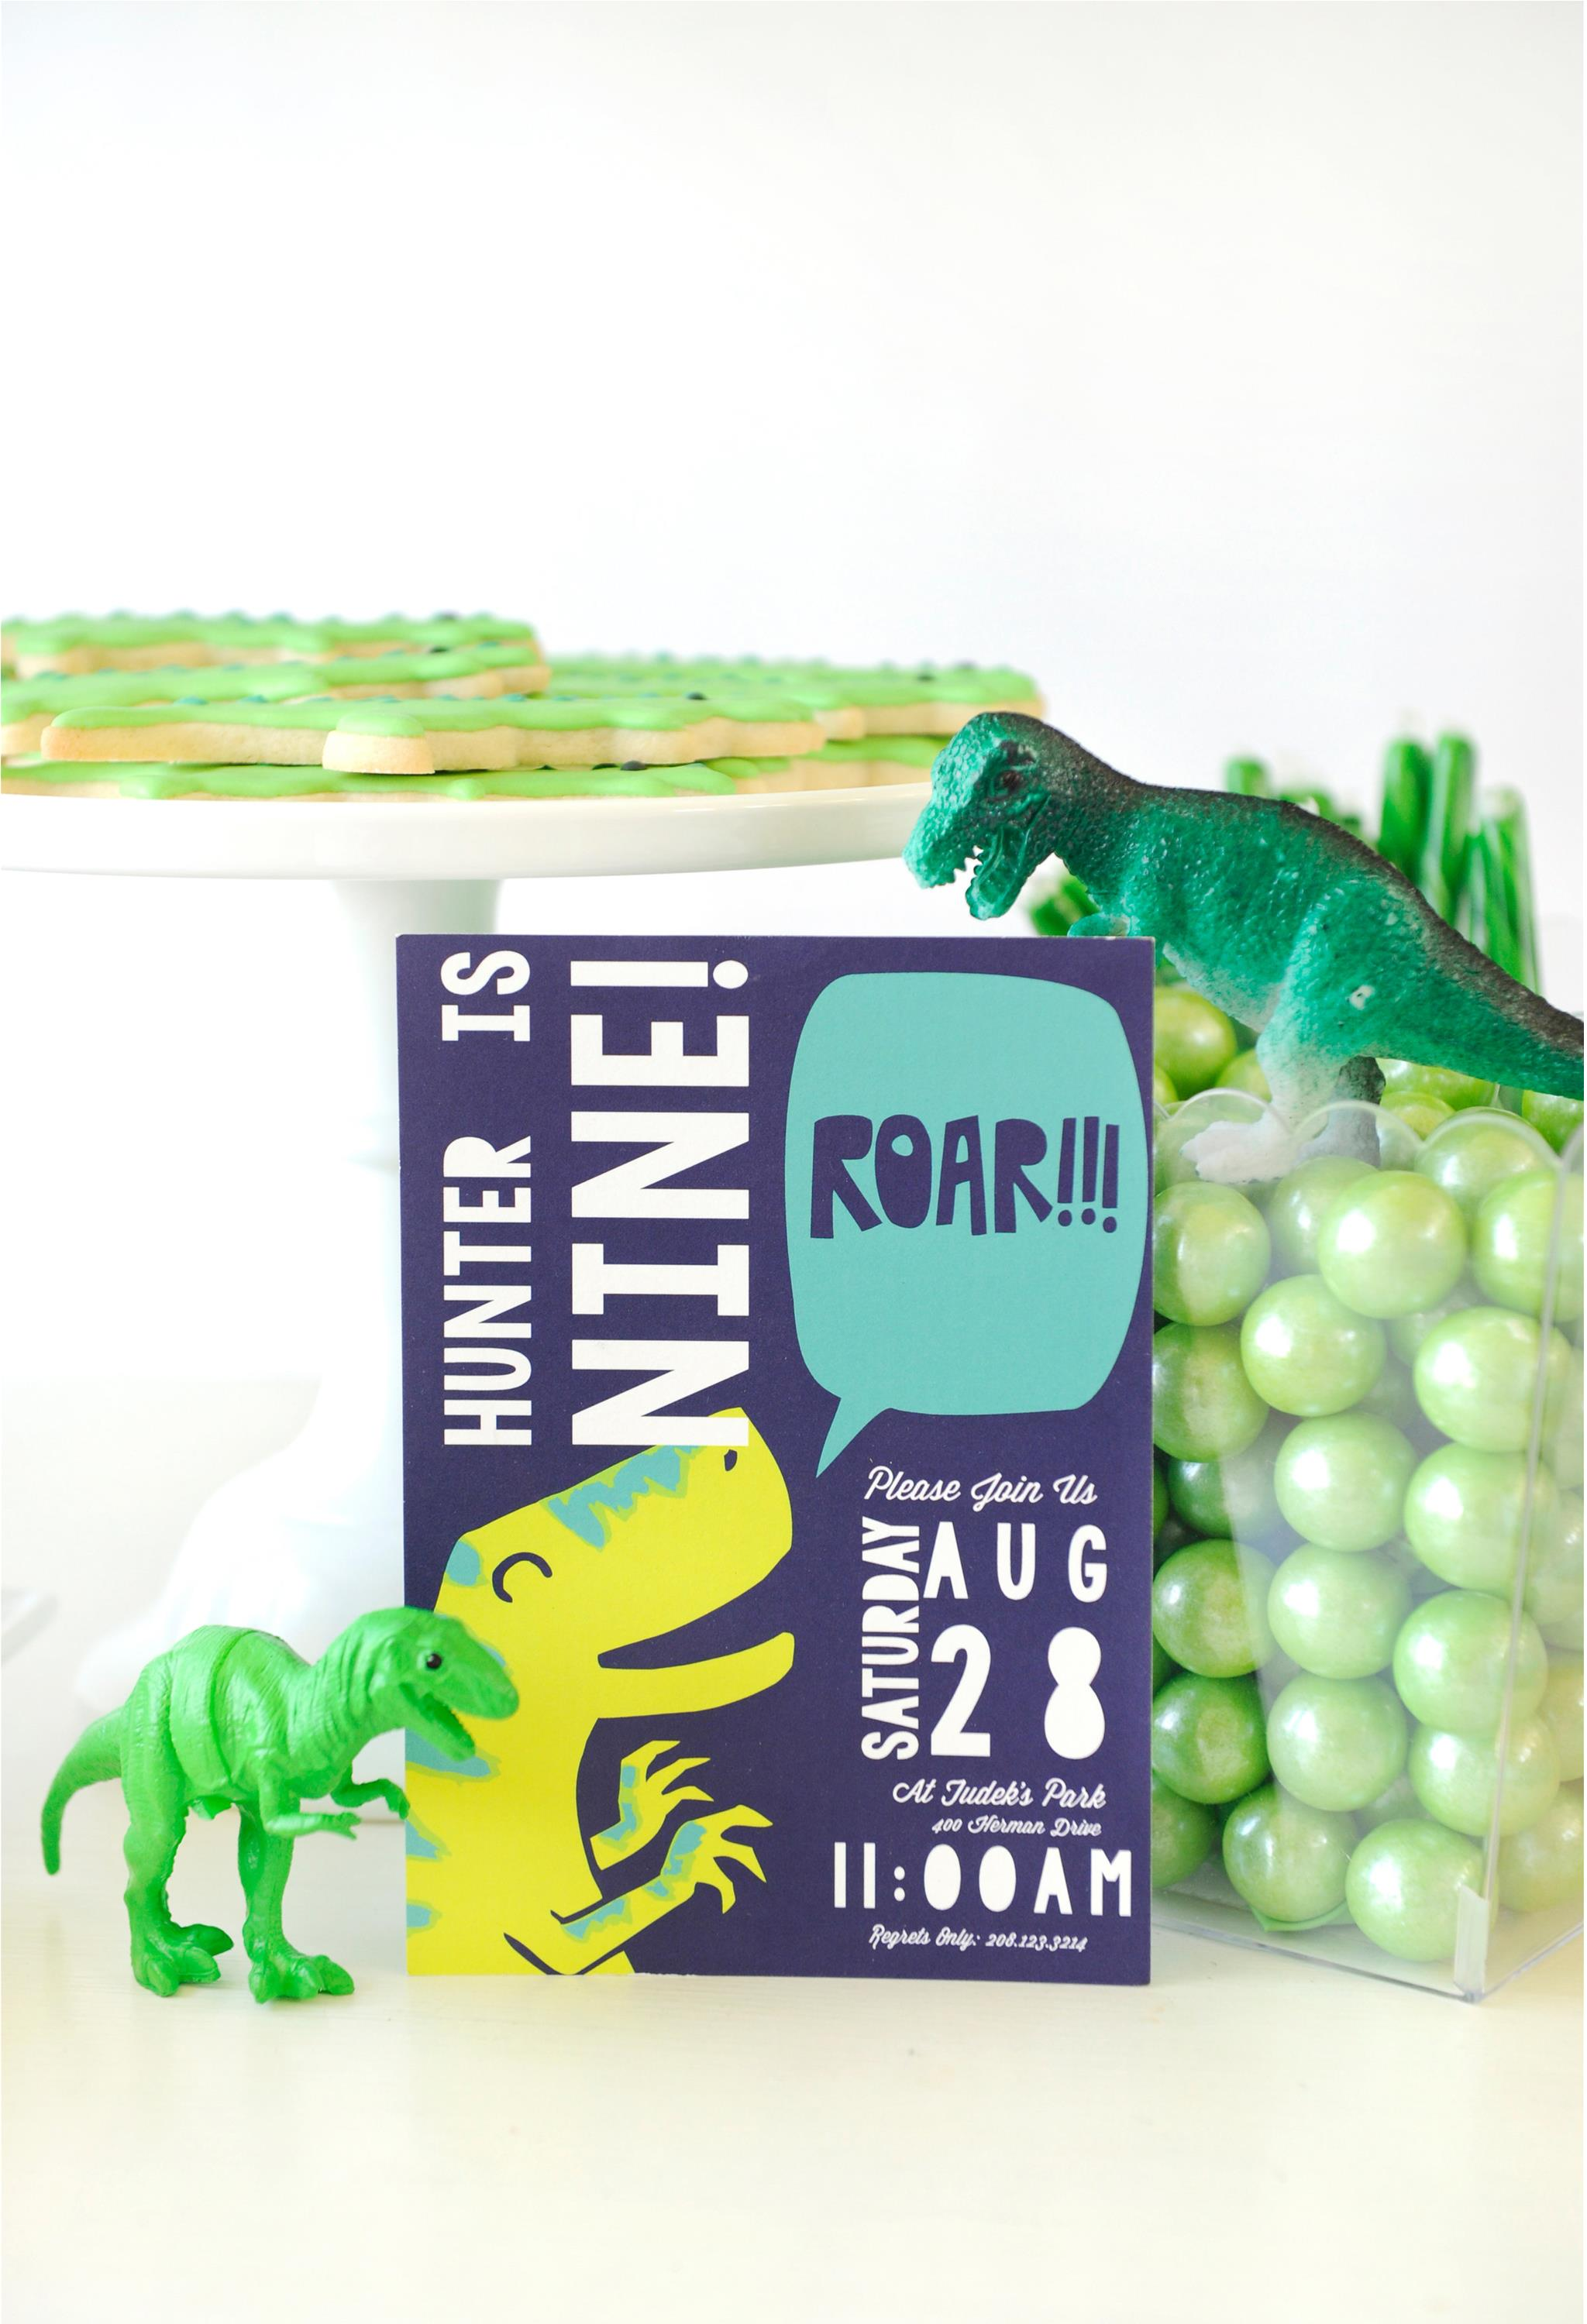 Dinosaur Birthday Party Invitation - Project Nursery